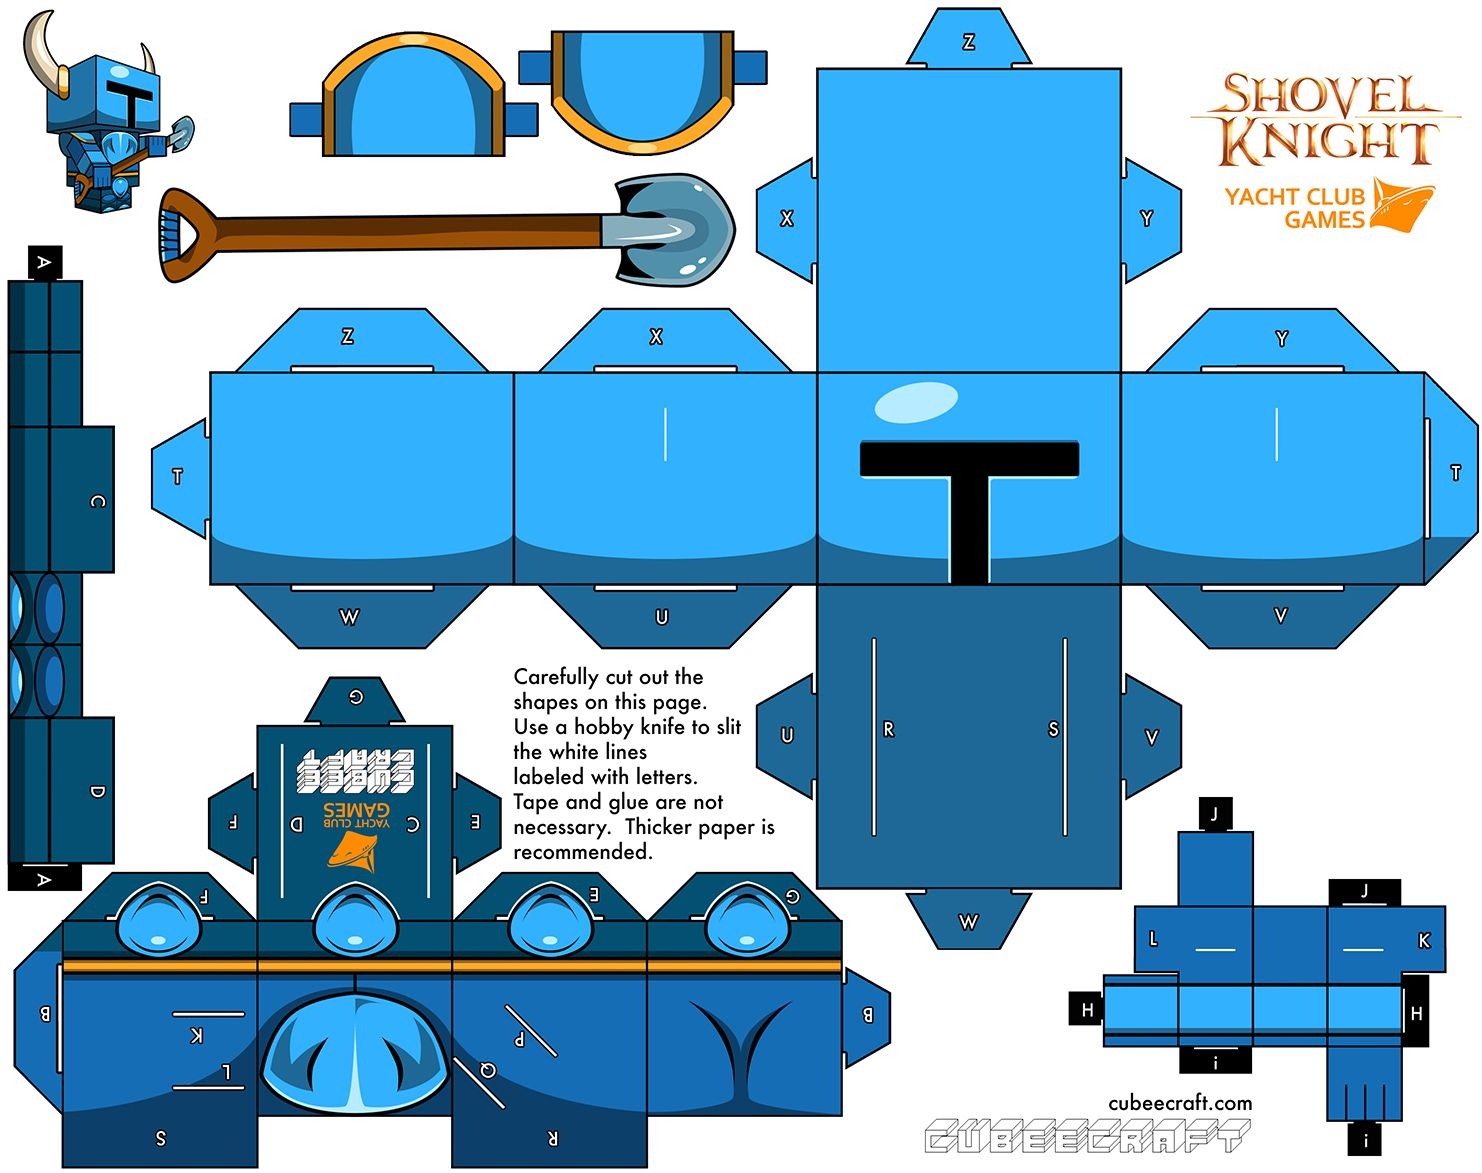 Shovel knight cubeecraft part of cubee cubes figures